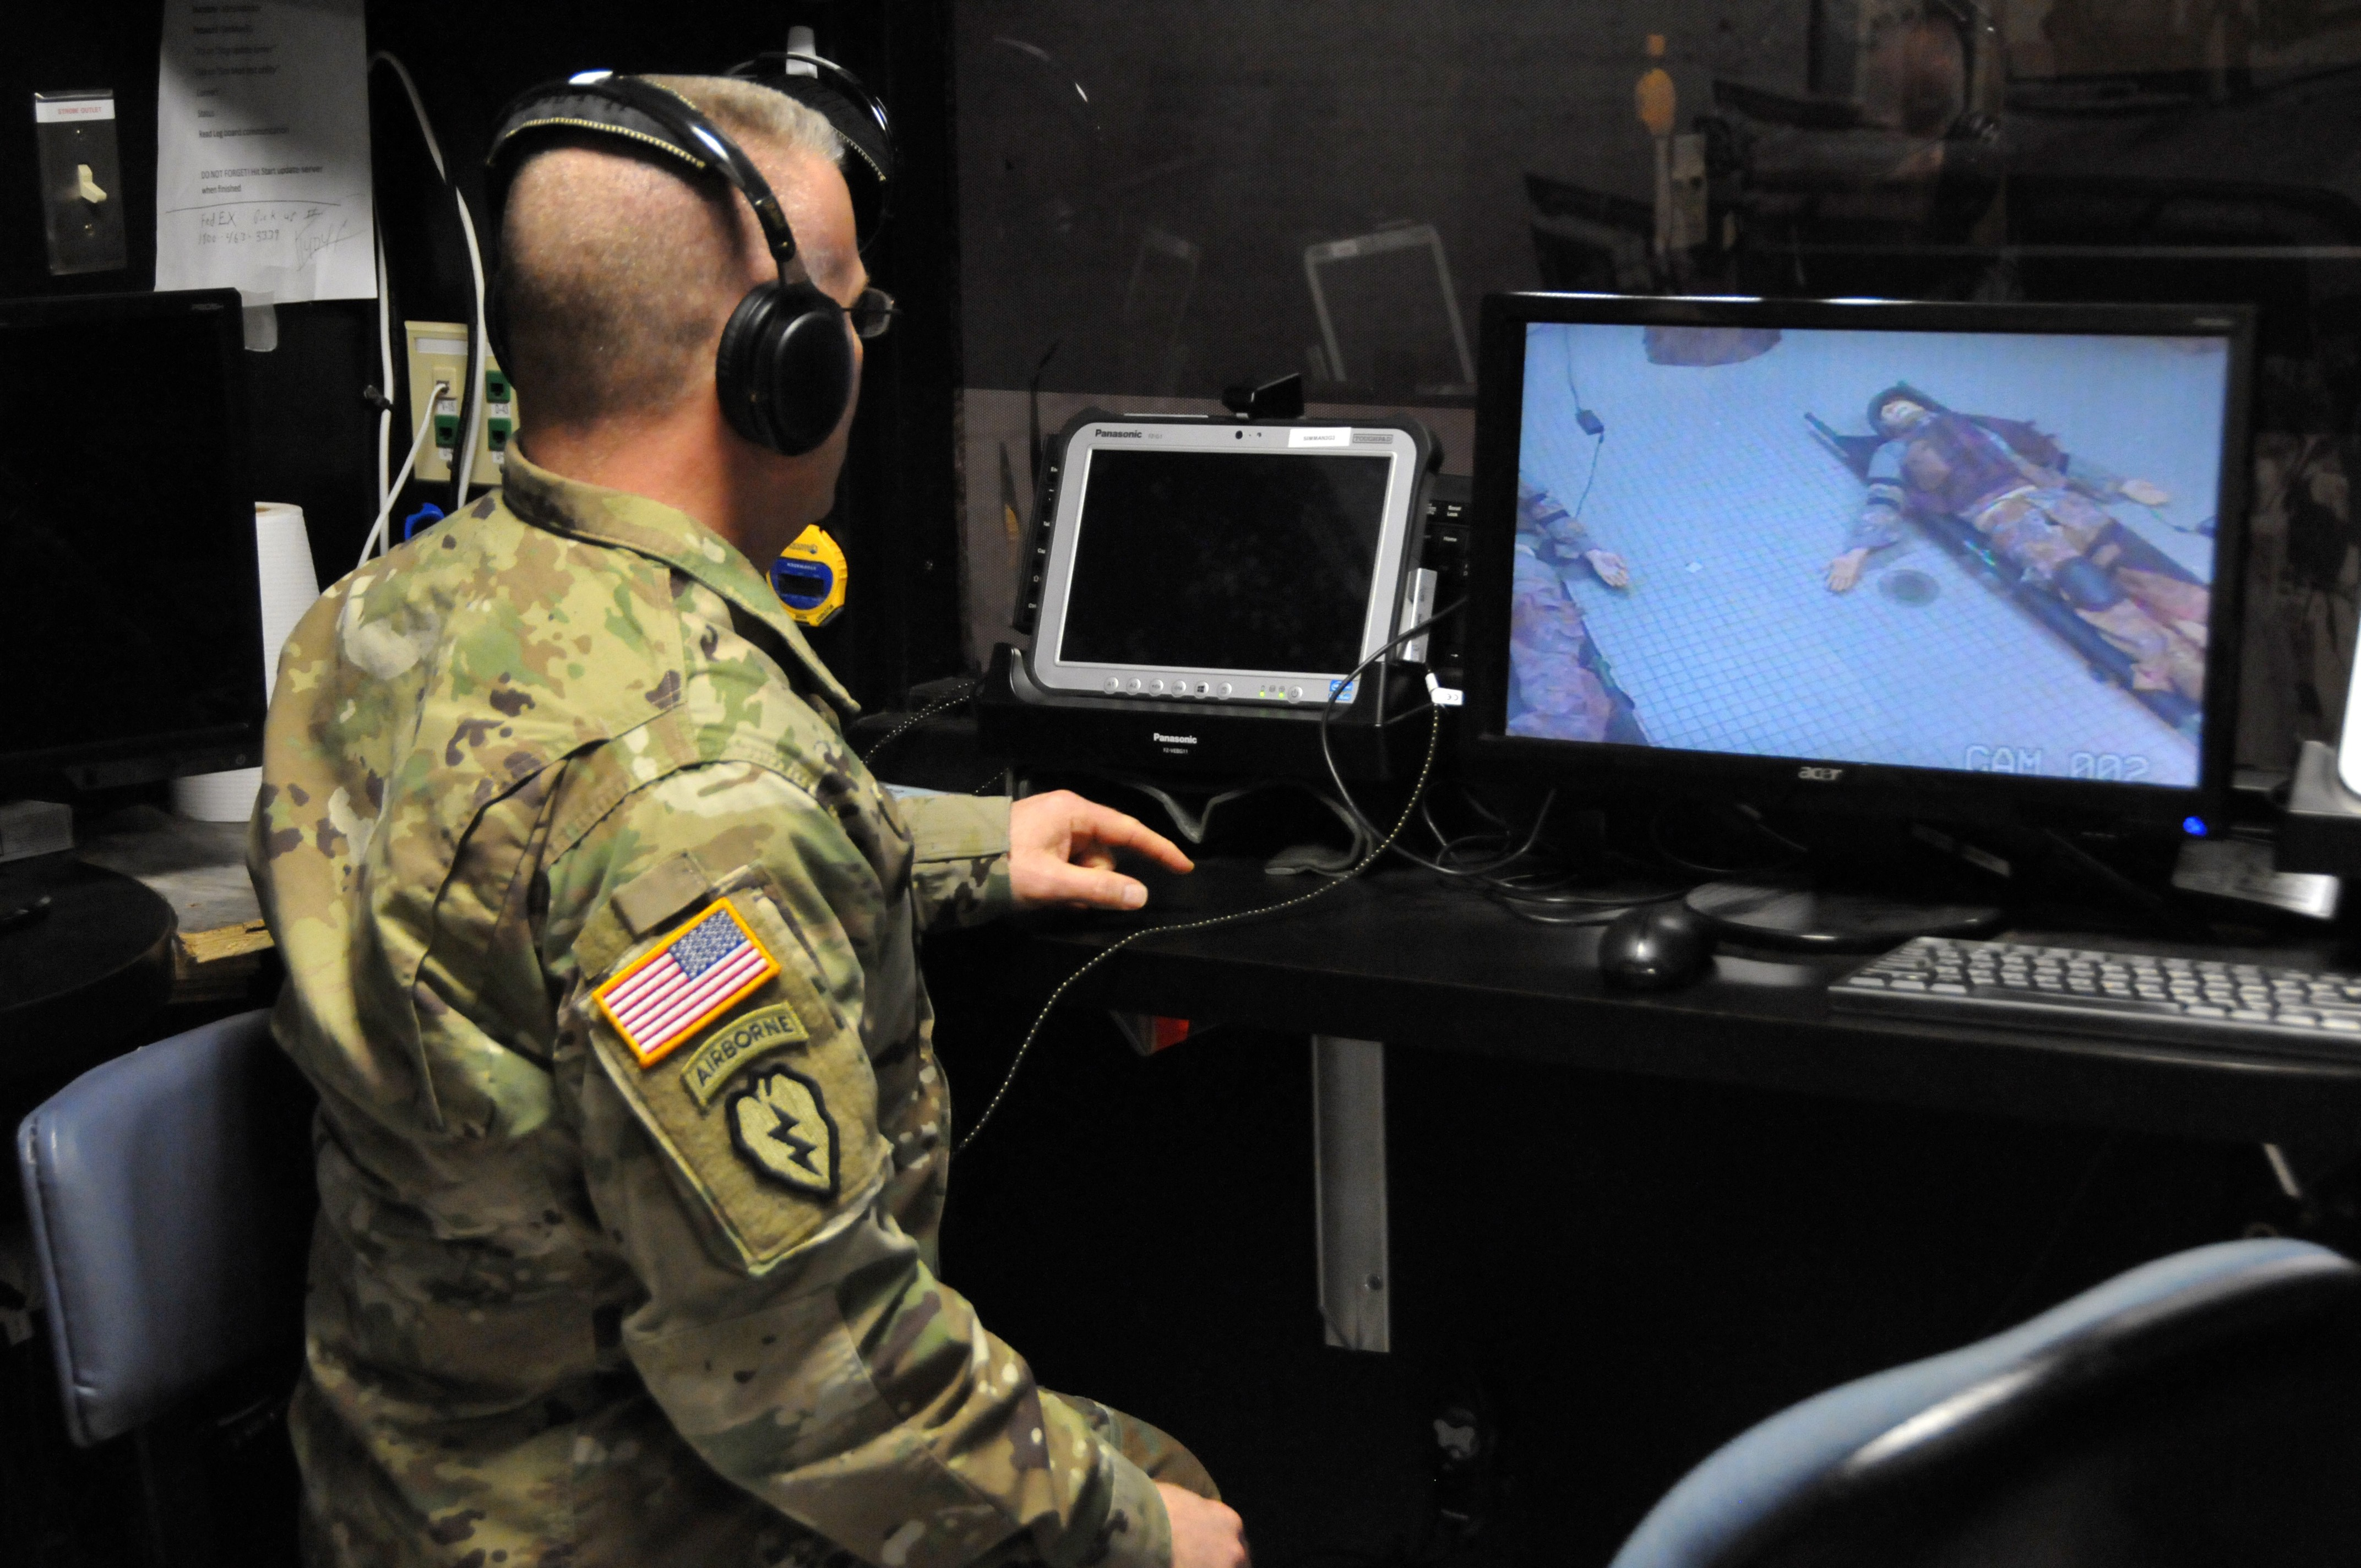 Army Reserve Command Offers Low Cost Medical Readiness Training For